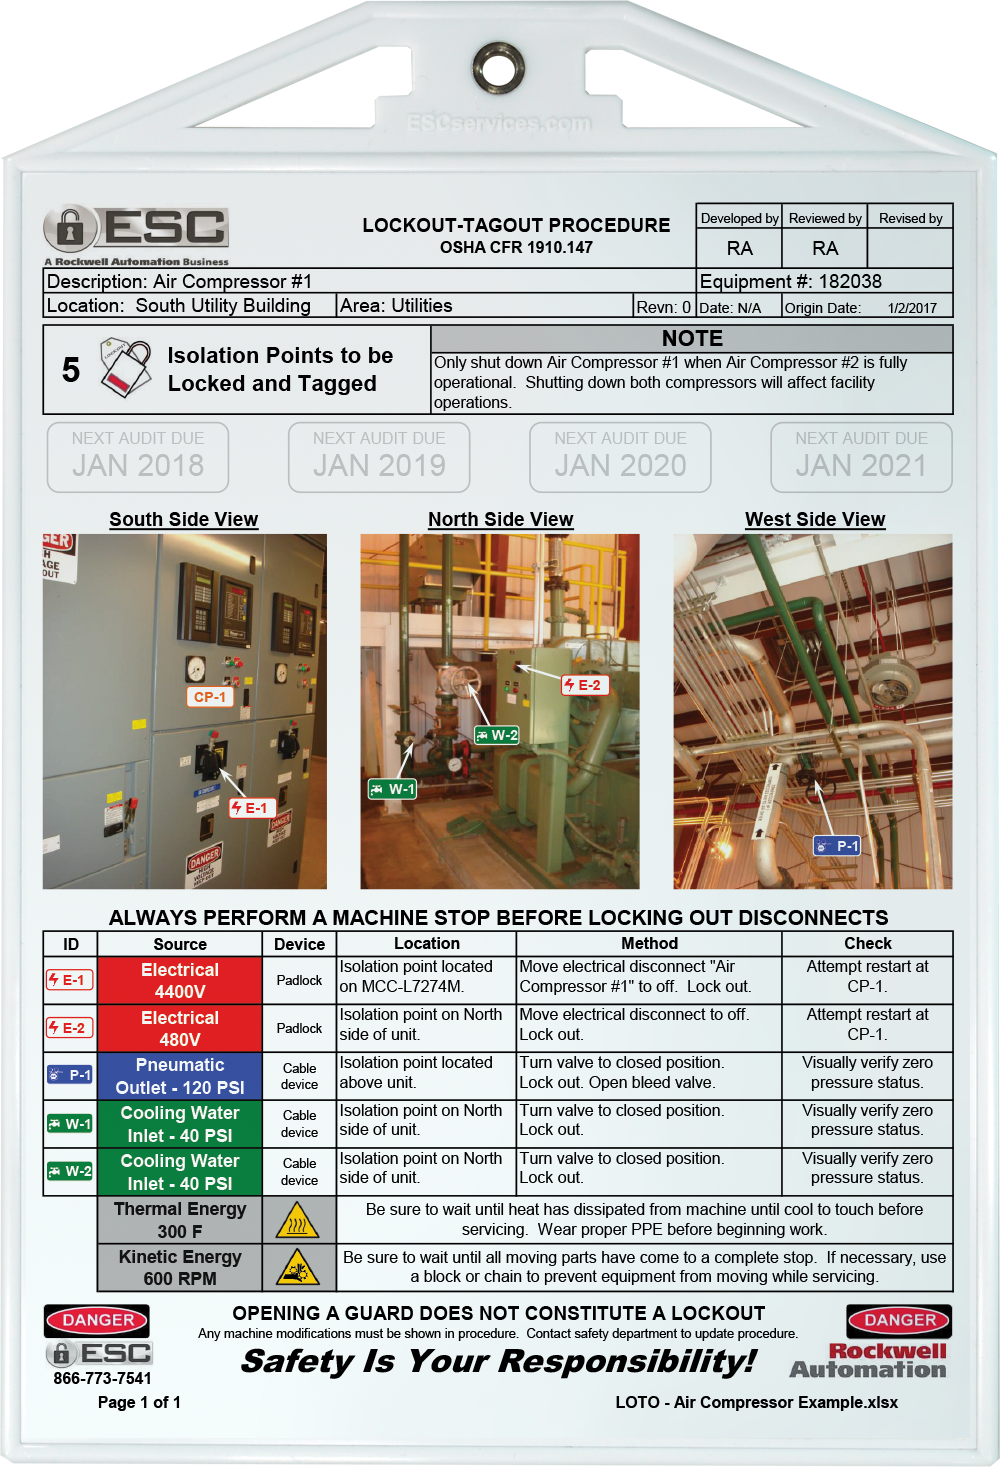 Documents Of Lockout Tagout Template Excel With Lockout Tagout Template Excel For Google Spreadsheet